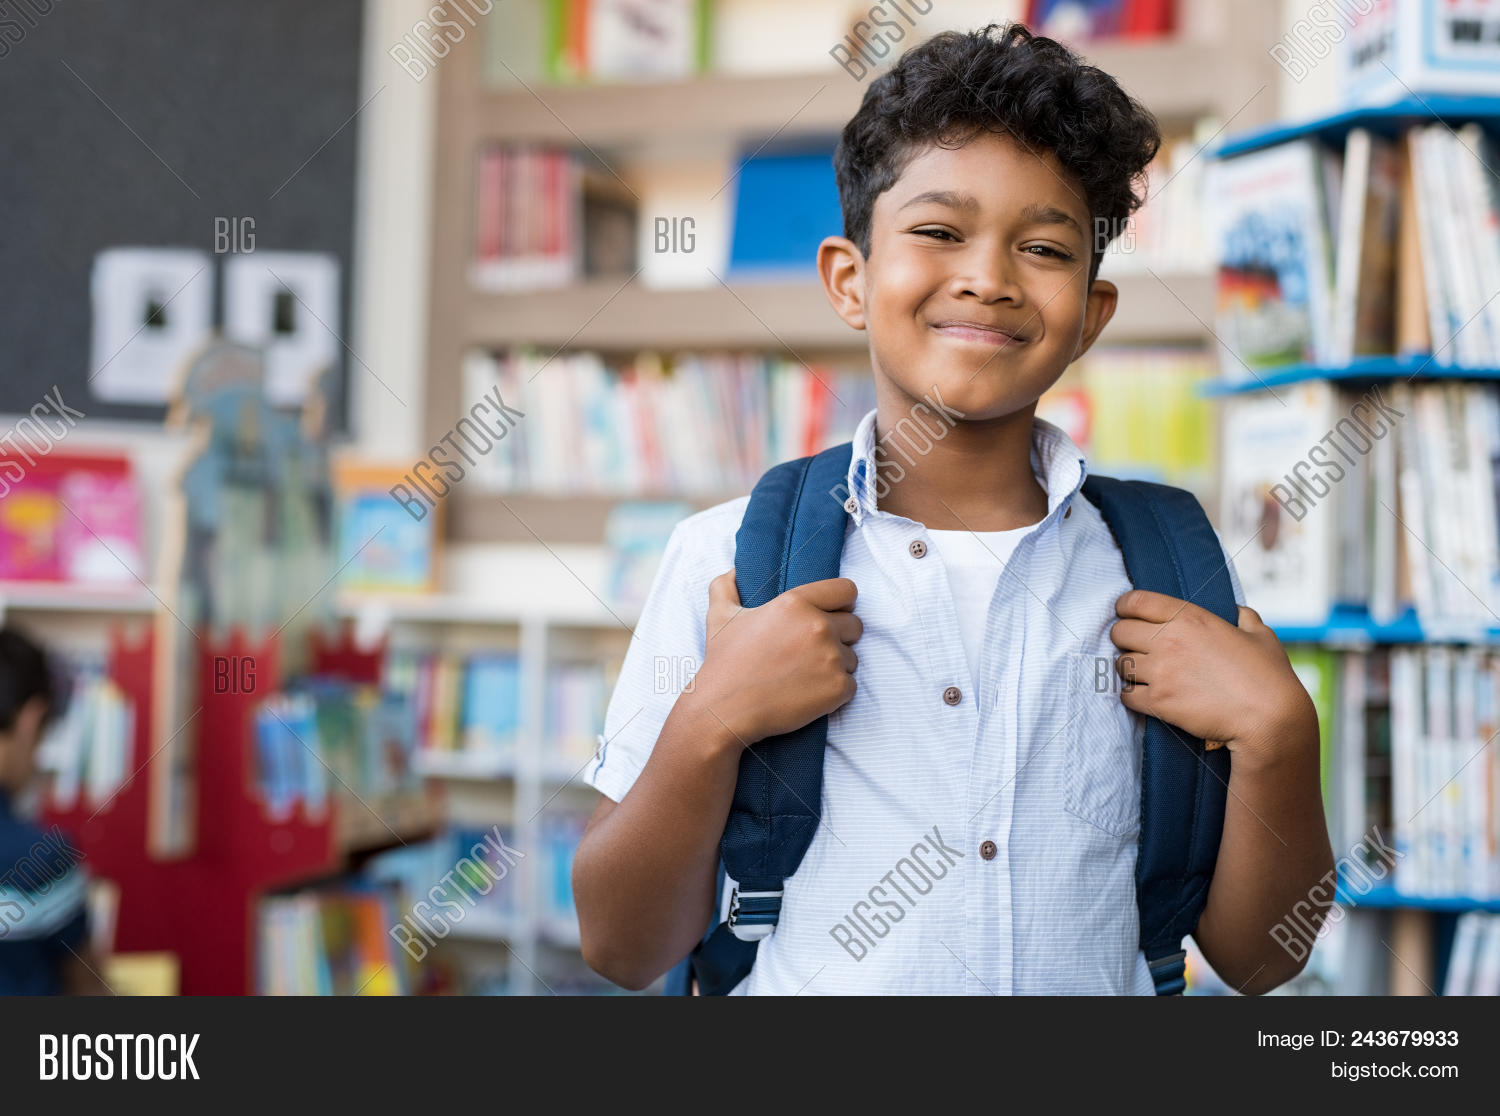 arab,aspiration,back to school,backpack,book,bookshelf,boy,carrying,casual,cheerful,child,class,cute,education,elementary,future,happiness,happy,hispanic,indian,islamic,kid,knowledge,latin,learning,lesson,library,male,middle eastern,multiethnic,muslim,one,portrait,primary,proud,pupil,scholar,school,smile,standing,student,study,studying,textbook,young